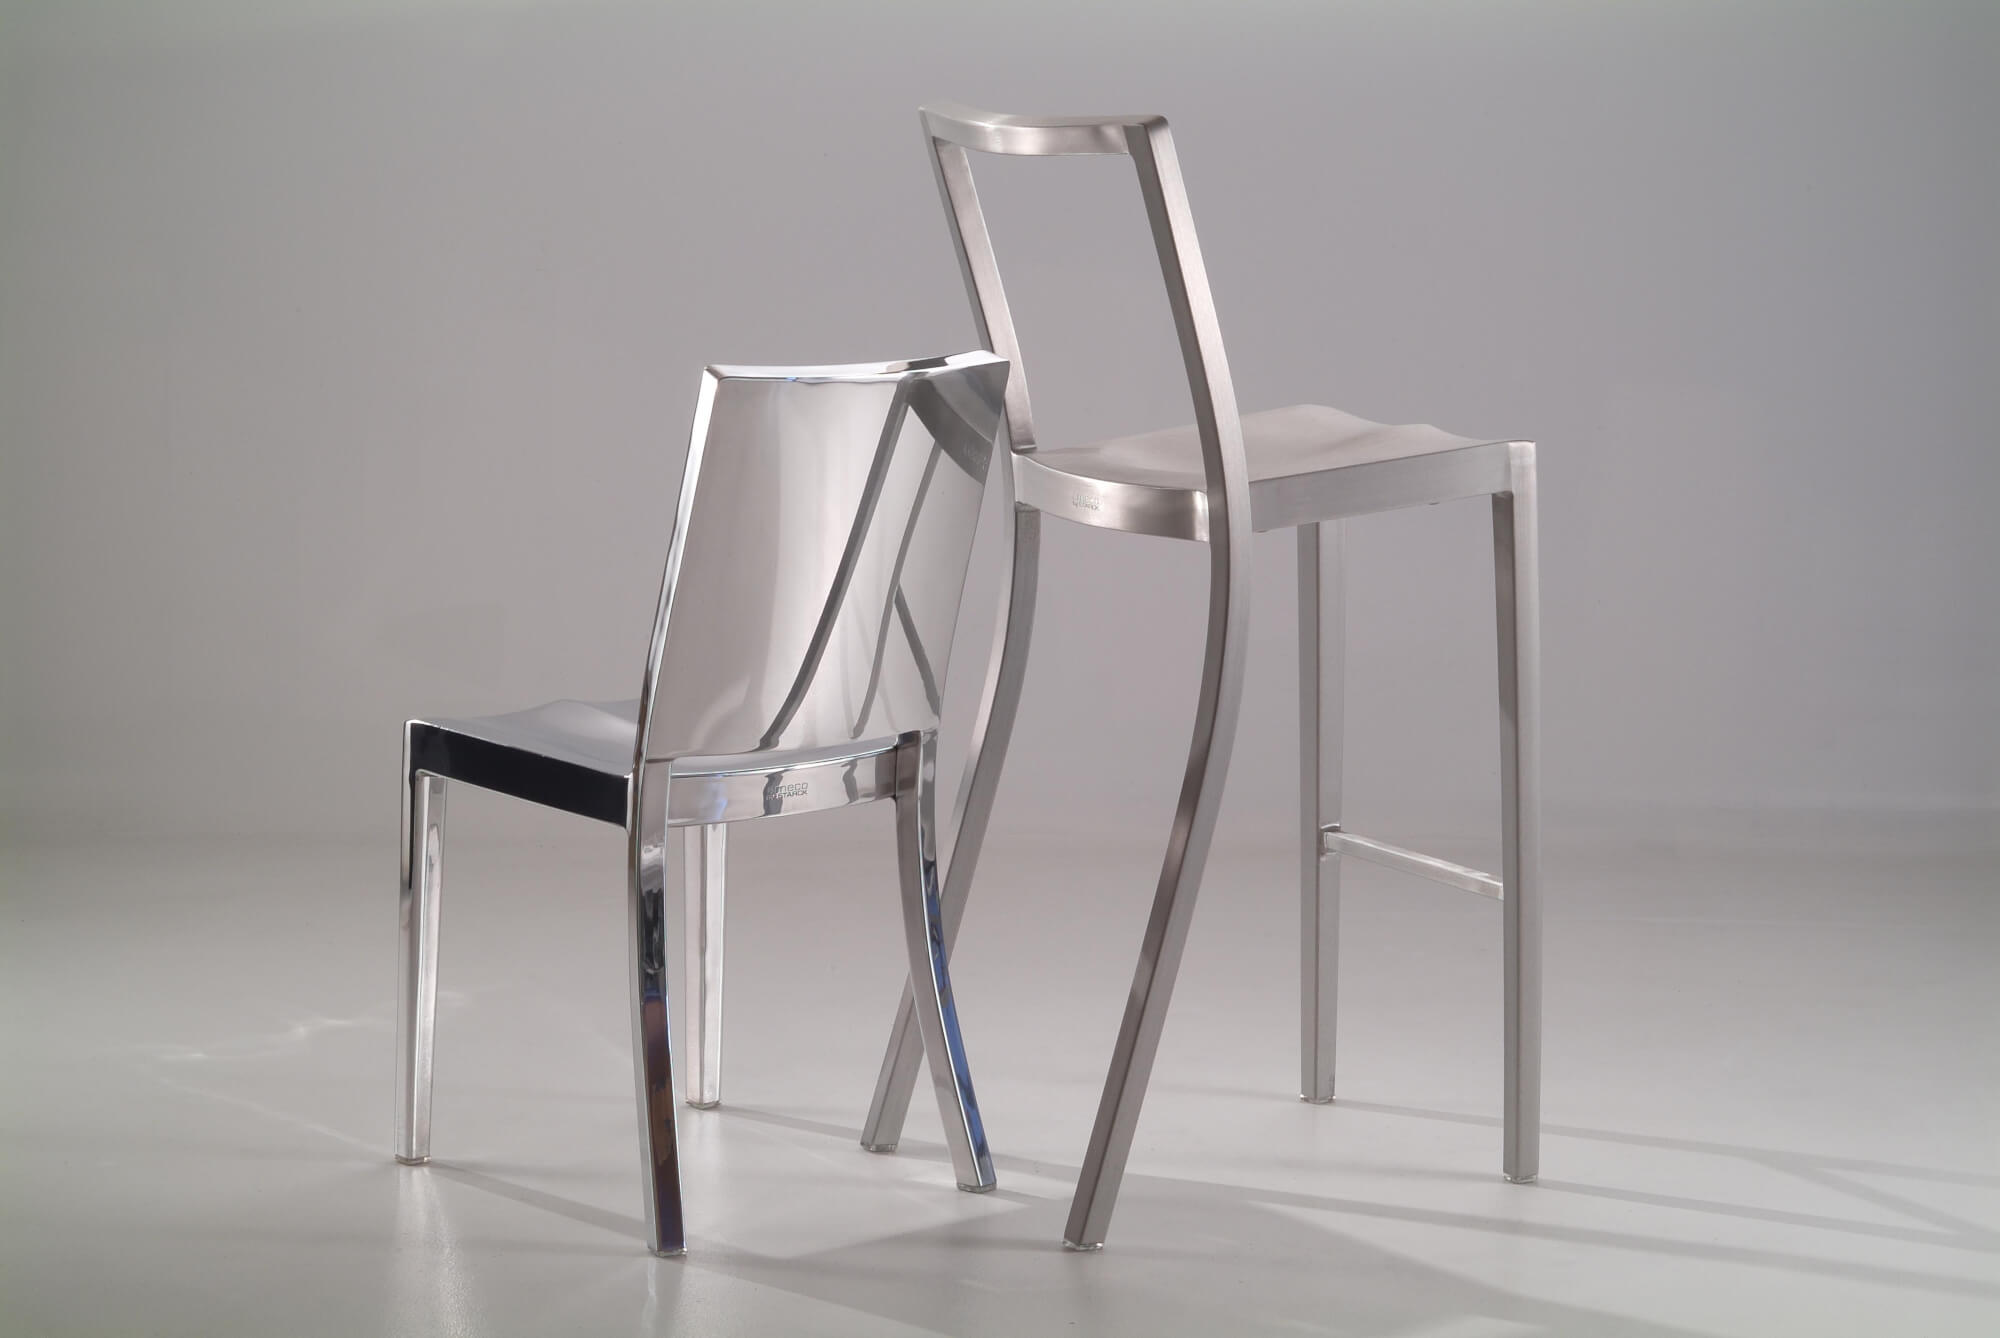 PHILIPPE STARCK AND EMECO – LONG LASTING COLLABORATION